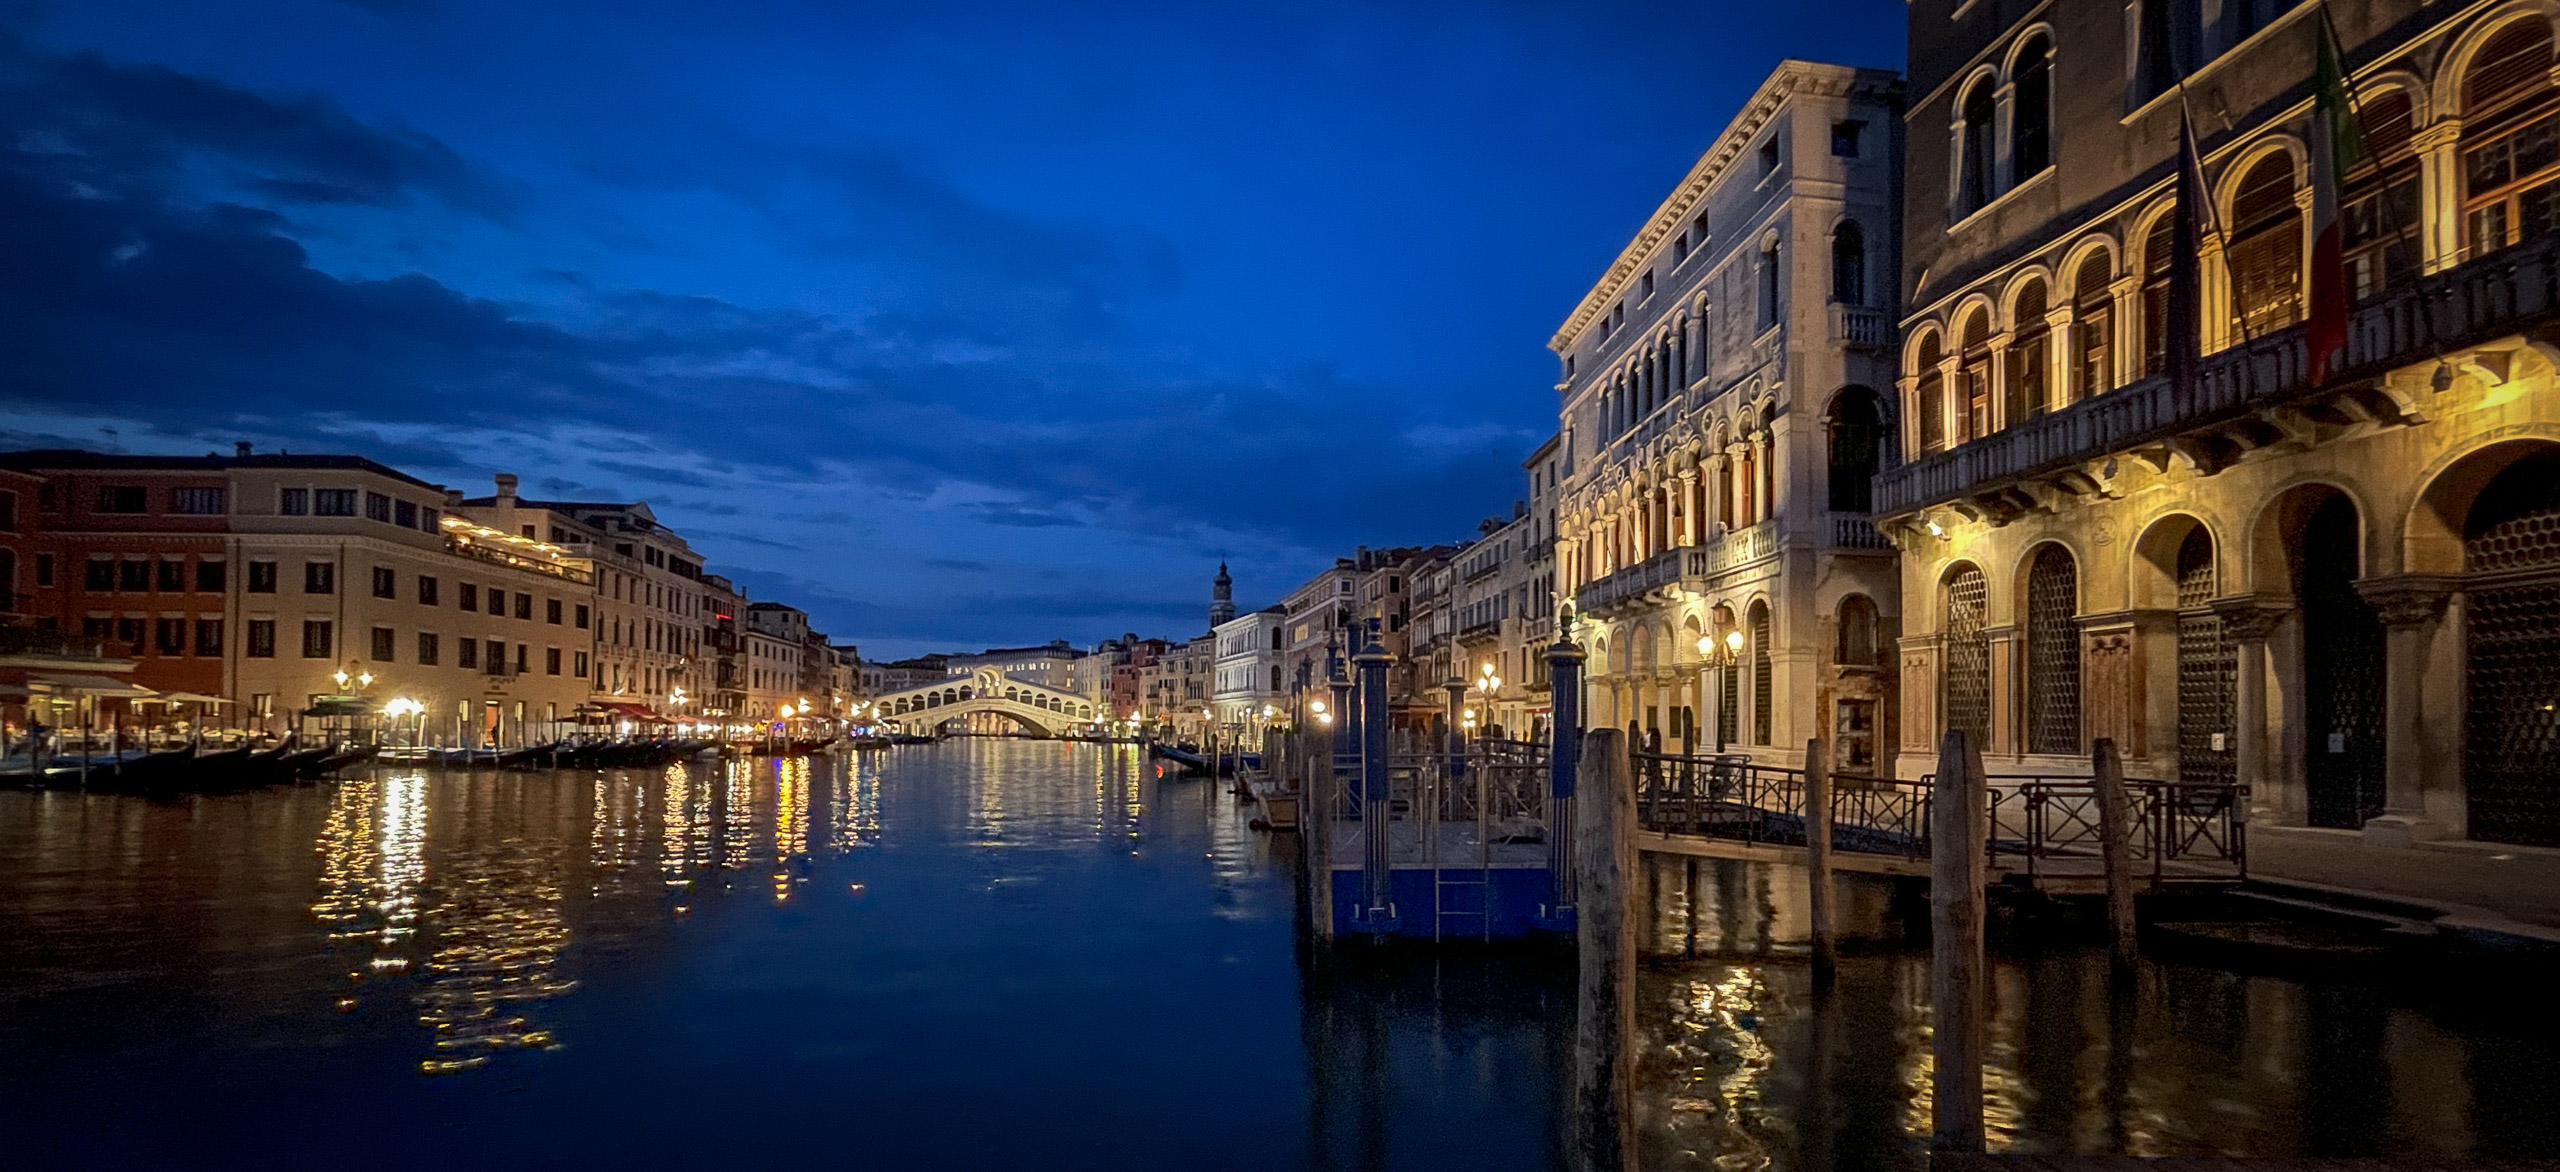 Blue hour on the Grand Canal